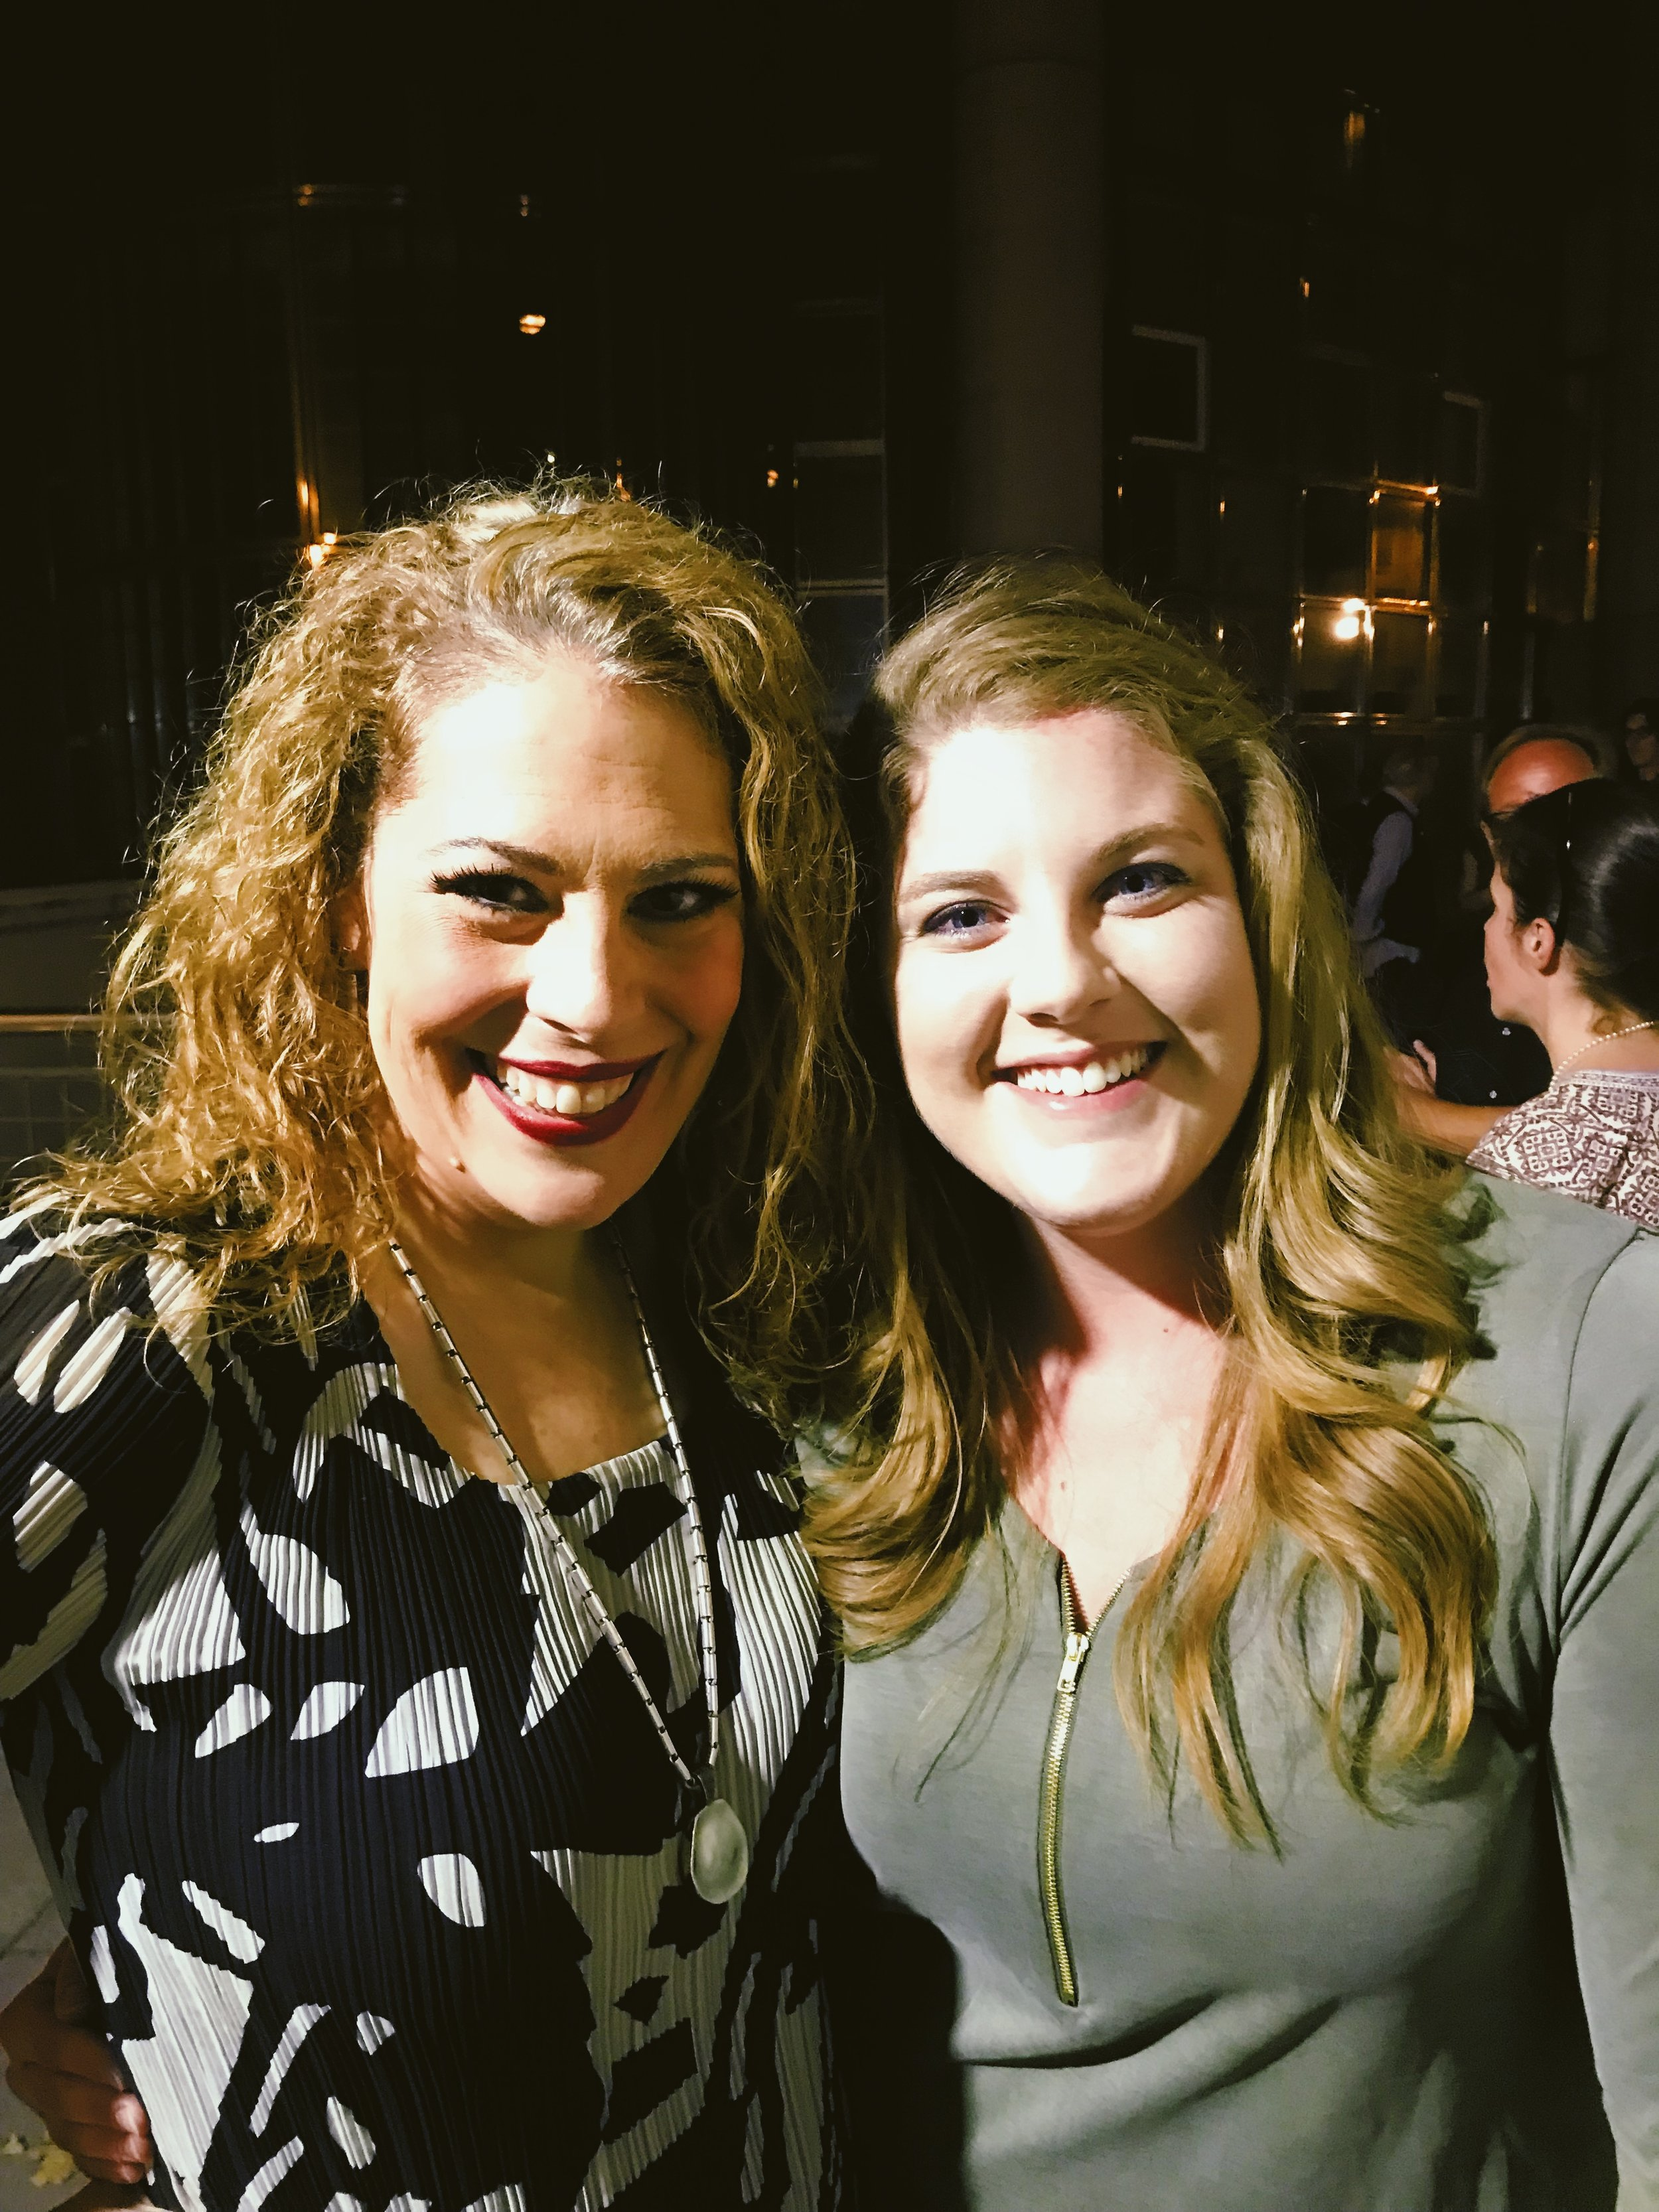 Sondra and I after the show. She is a gem.